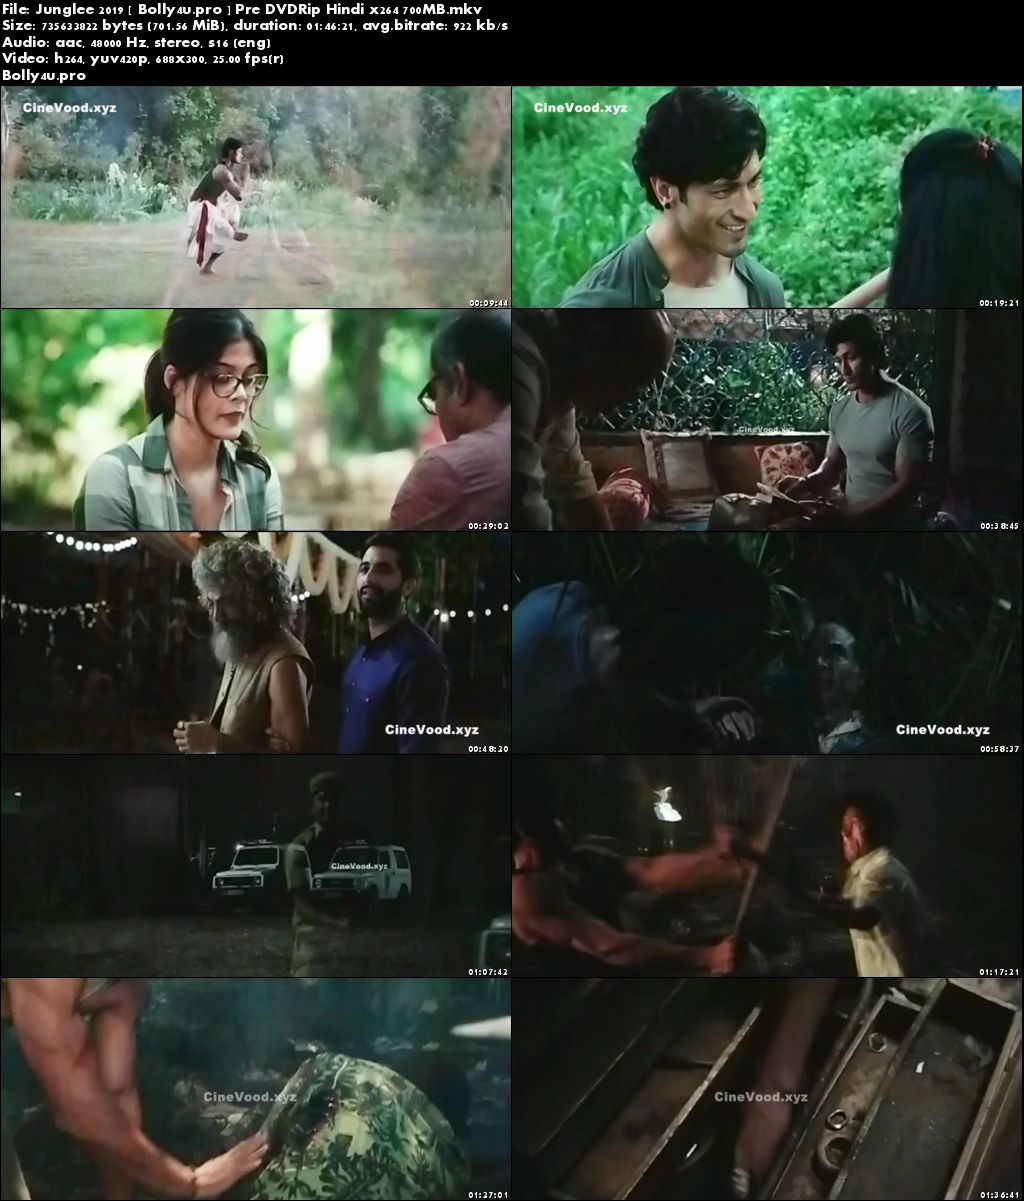 Junglee 2019 Pre DVDRip 300MB Full Hindi Movie Download 480p